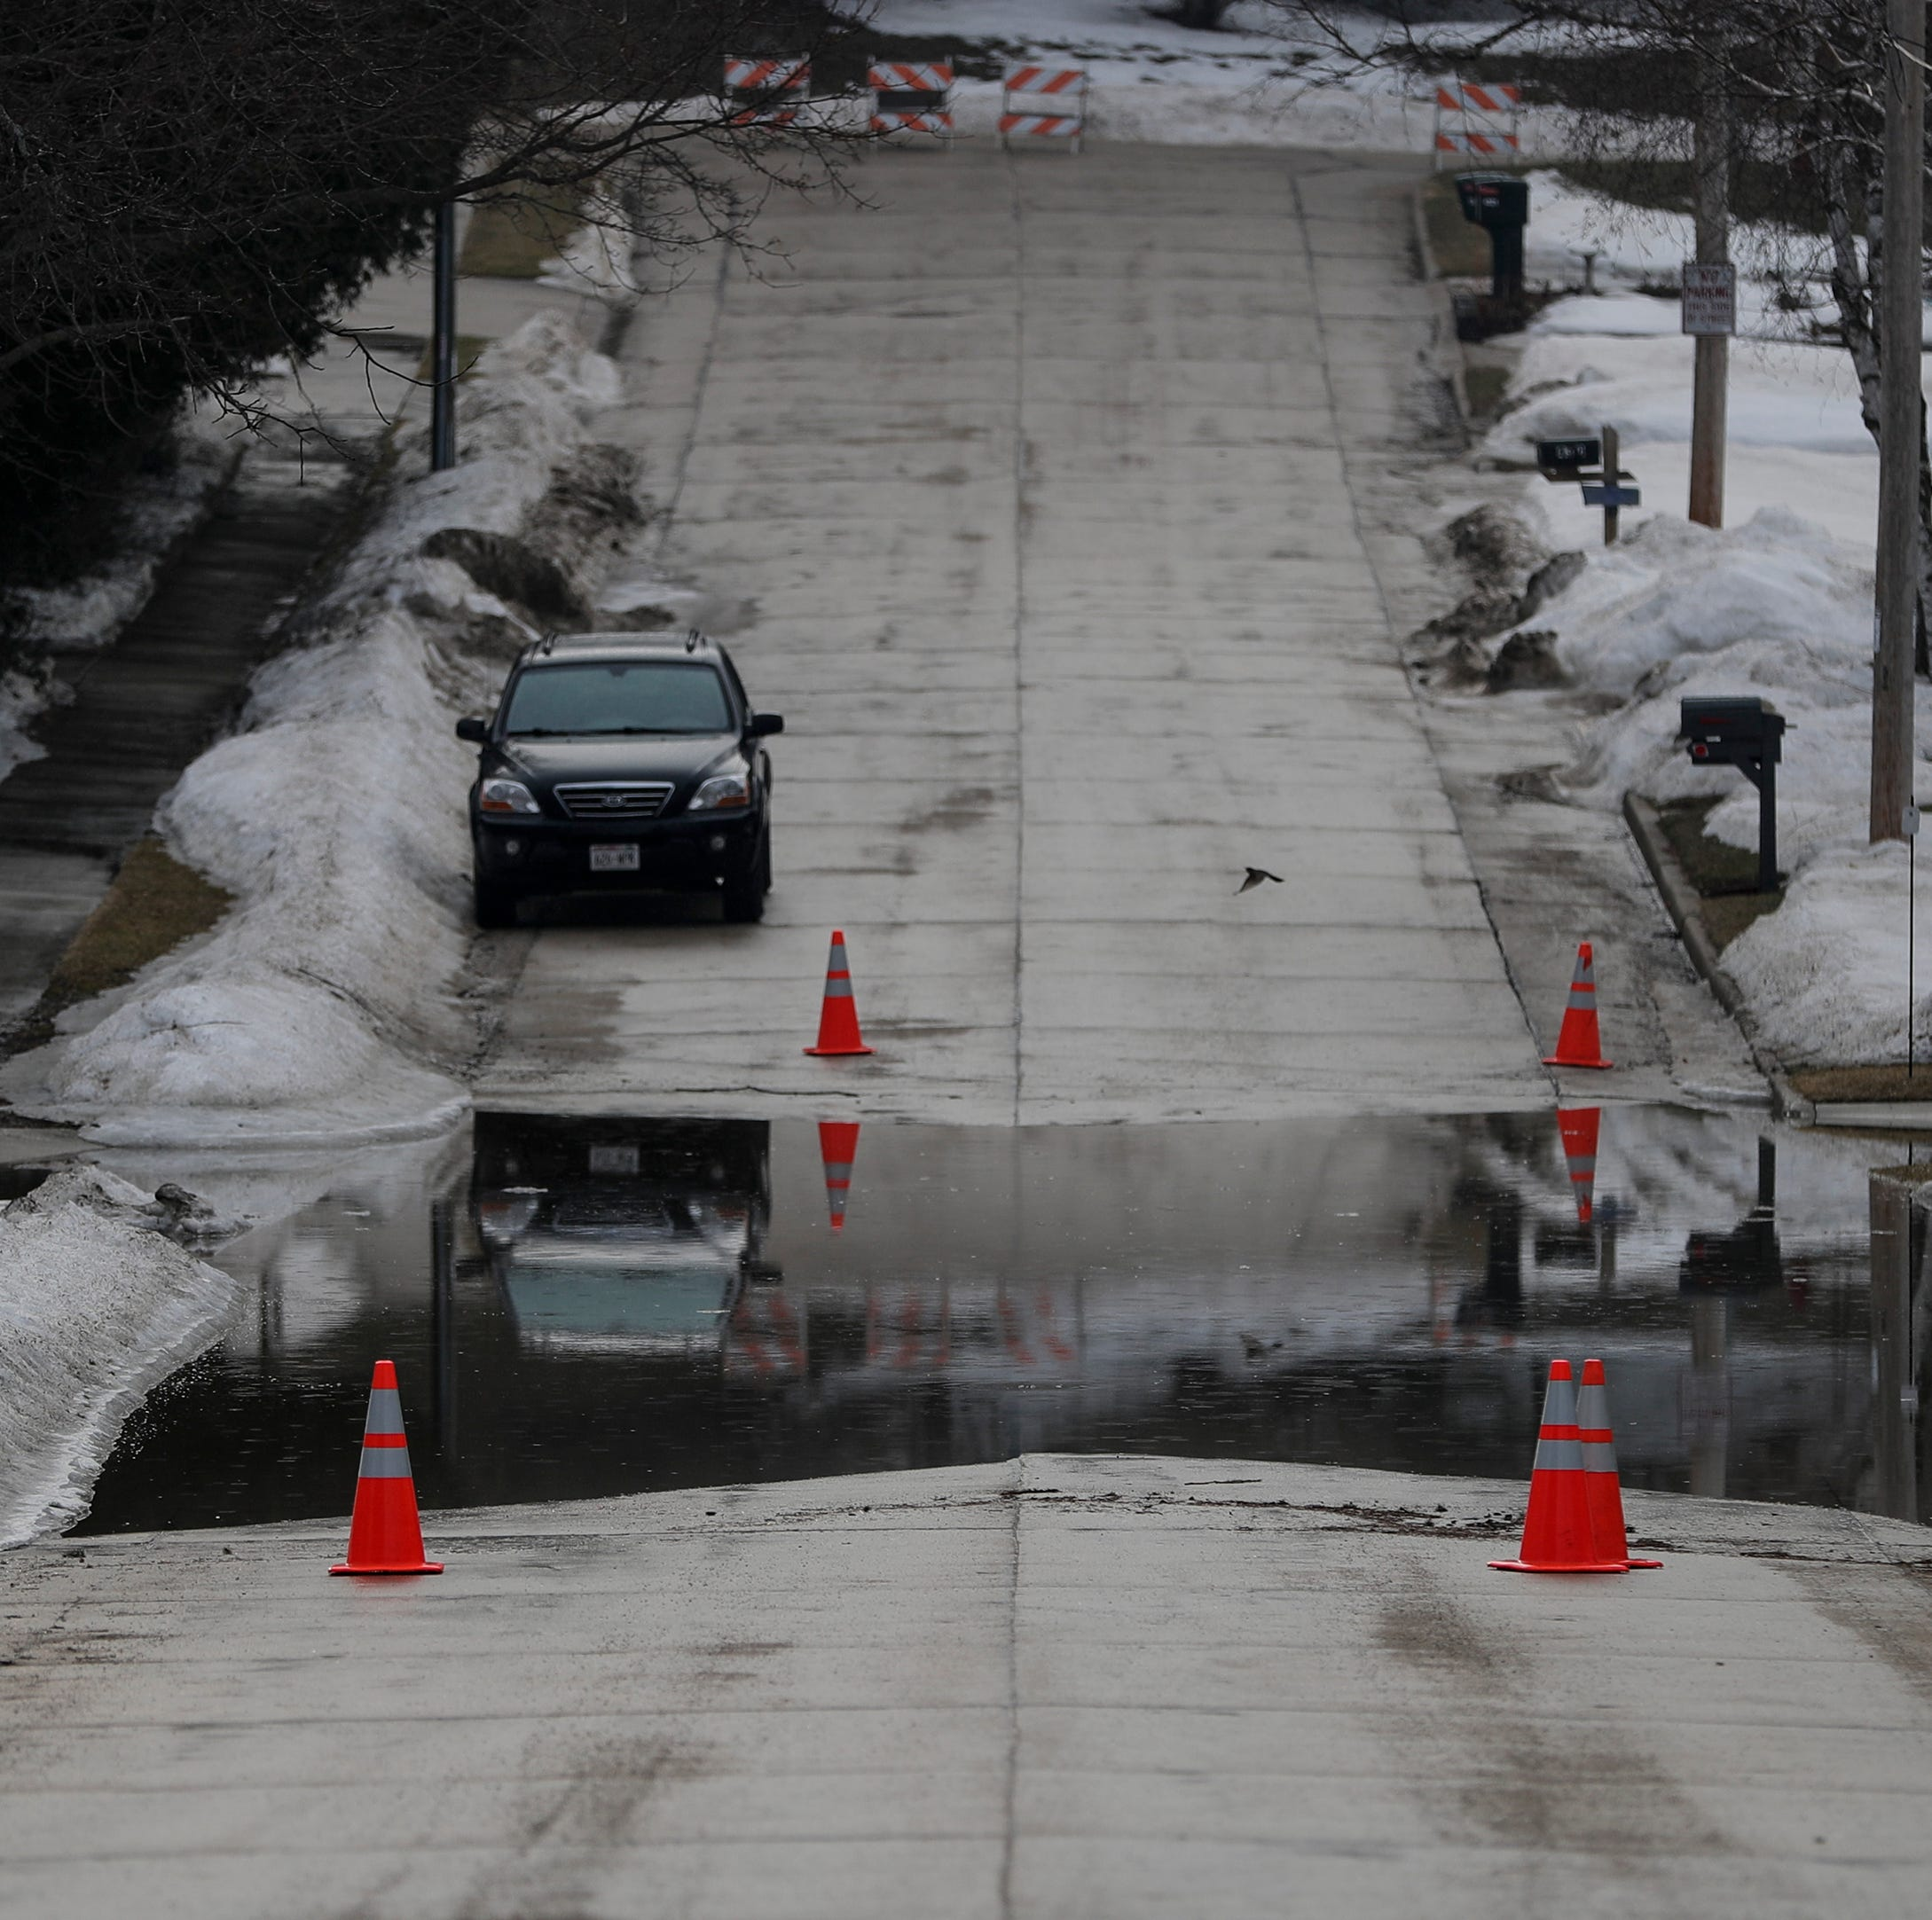 Manitowoc flood: City closes portion of Delta Street because of high water levels